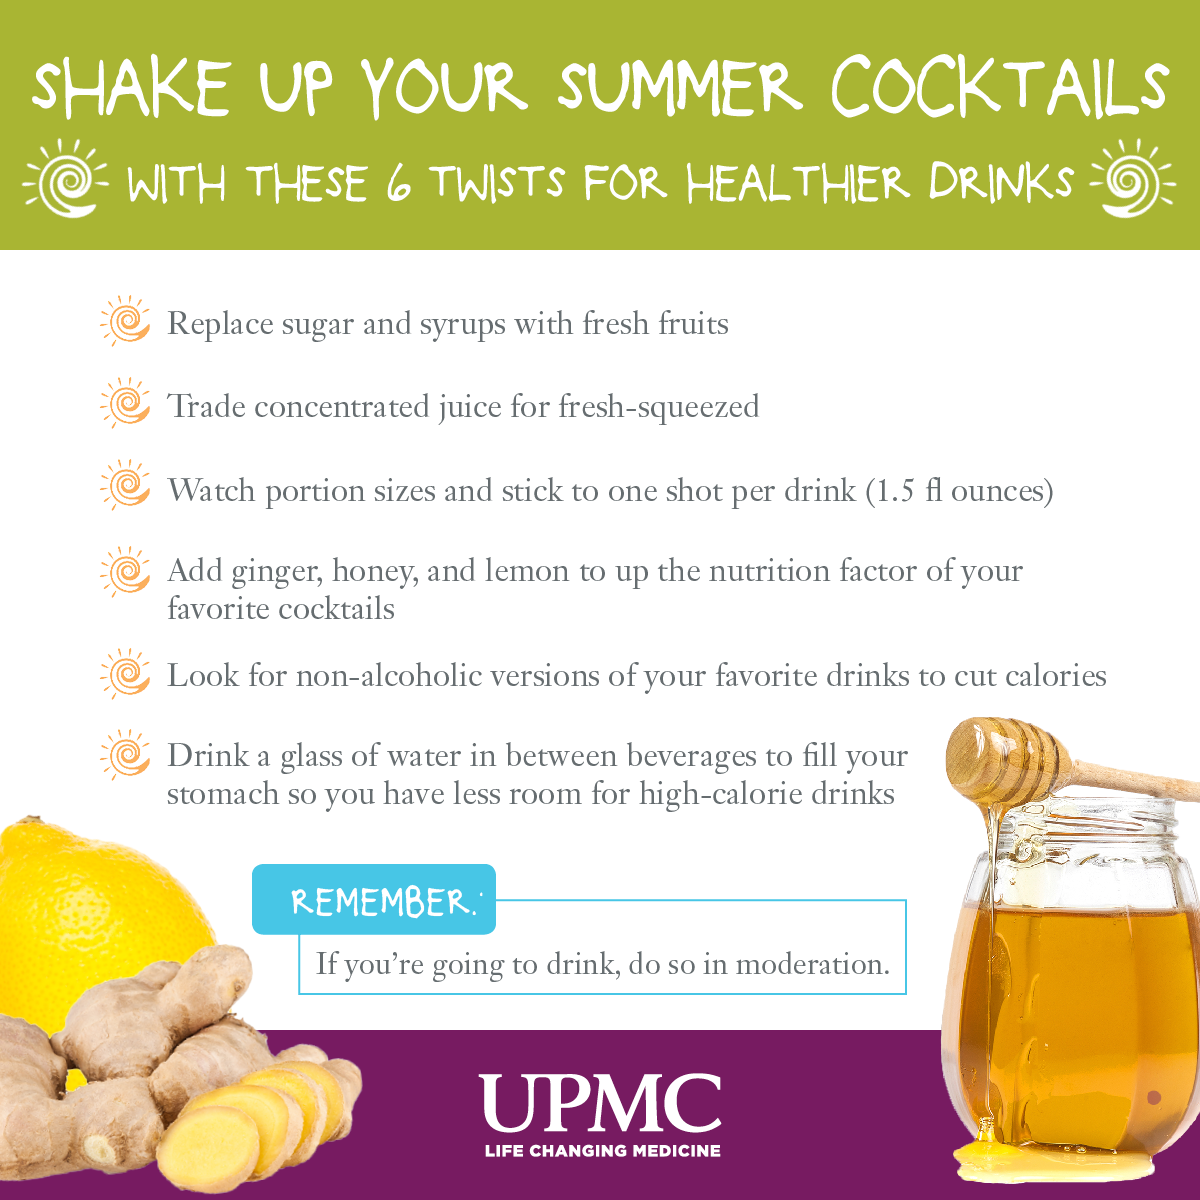 use these healthy drink tips and recipes